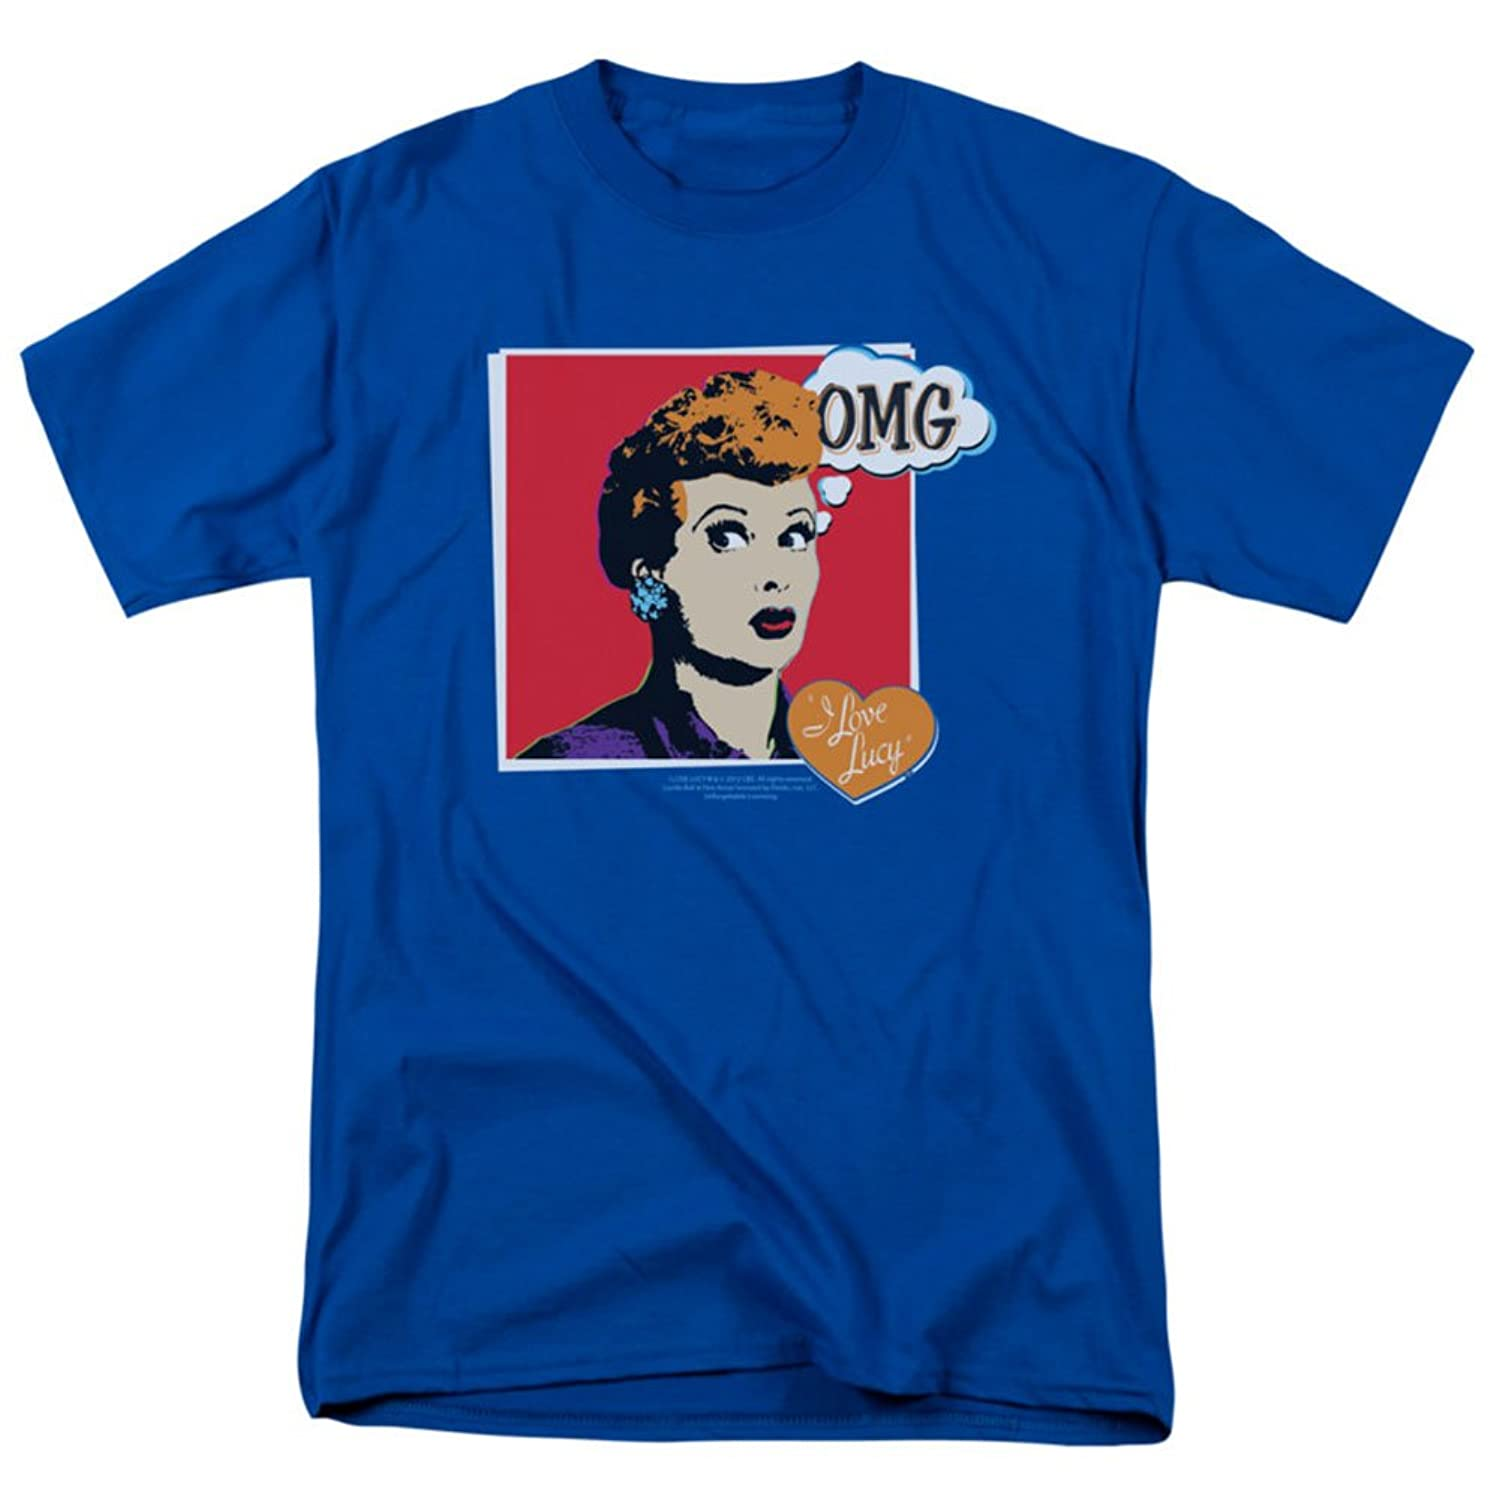 I Love Lucy - Mens I Love Worhol Omg T-Shirt In Royal